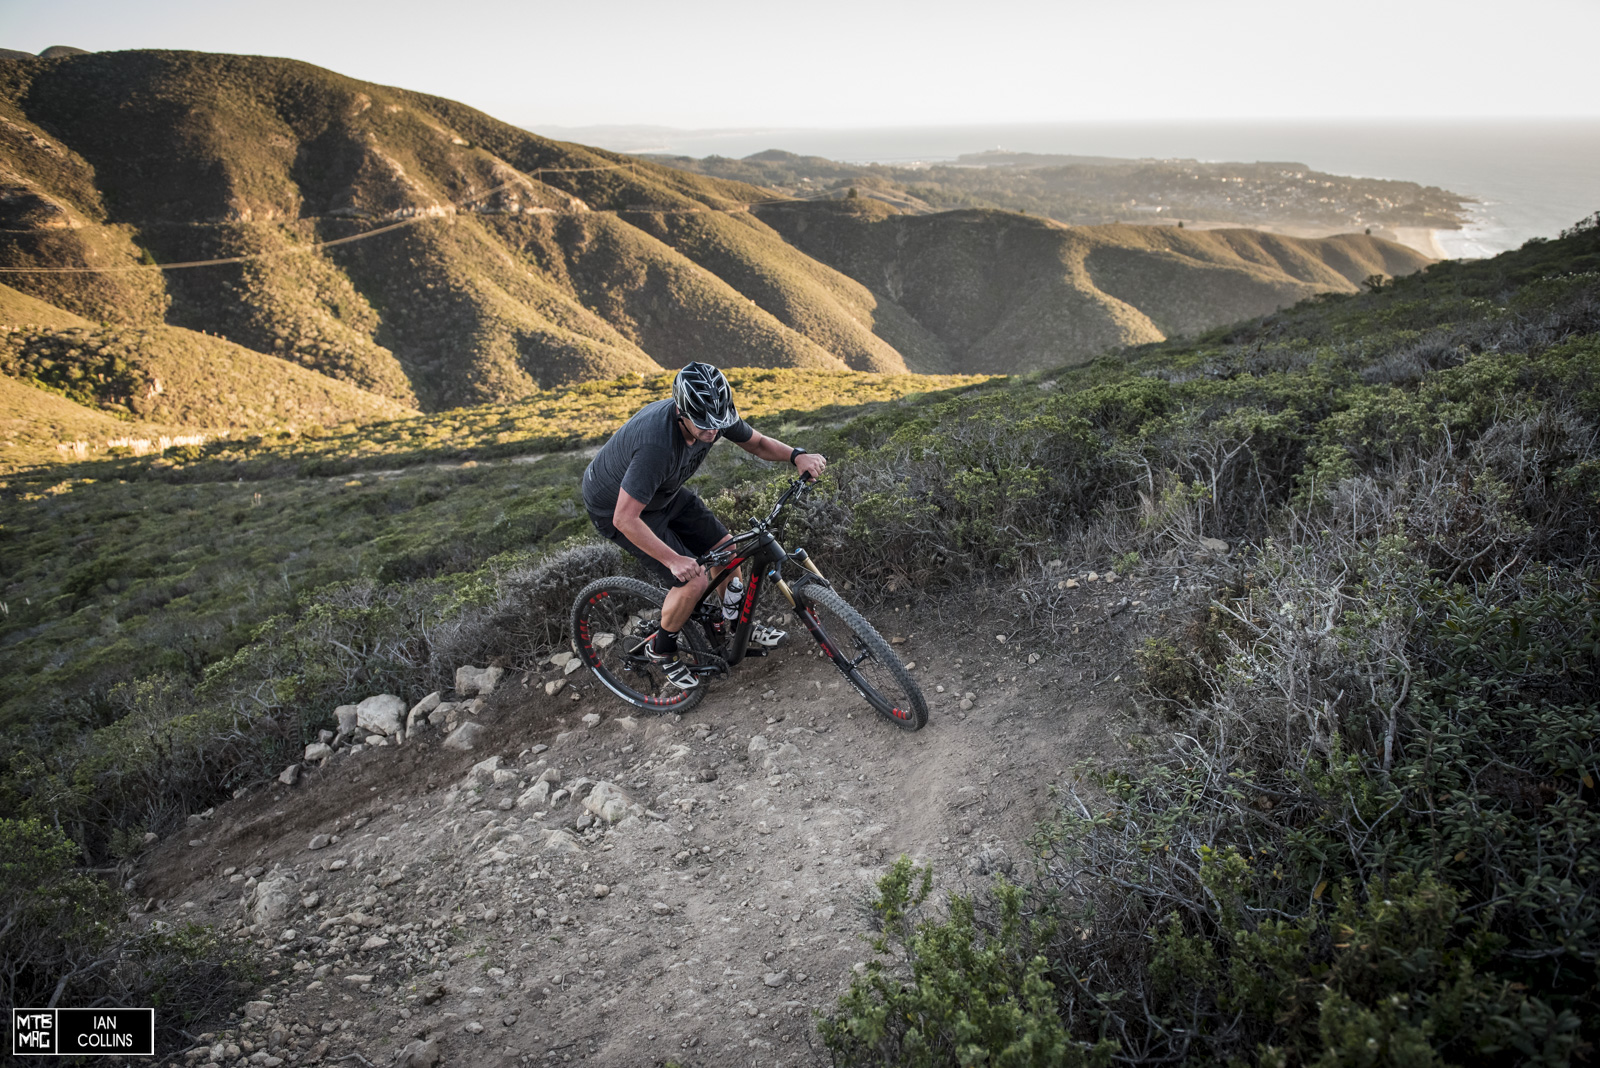 The Fuel EX is a champ on the climbs. Easily one of the best we've ridden.